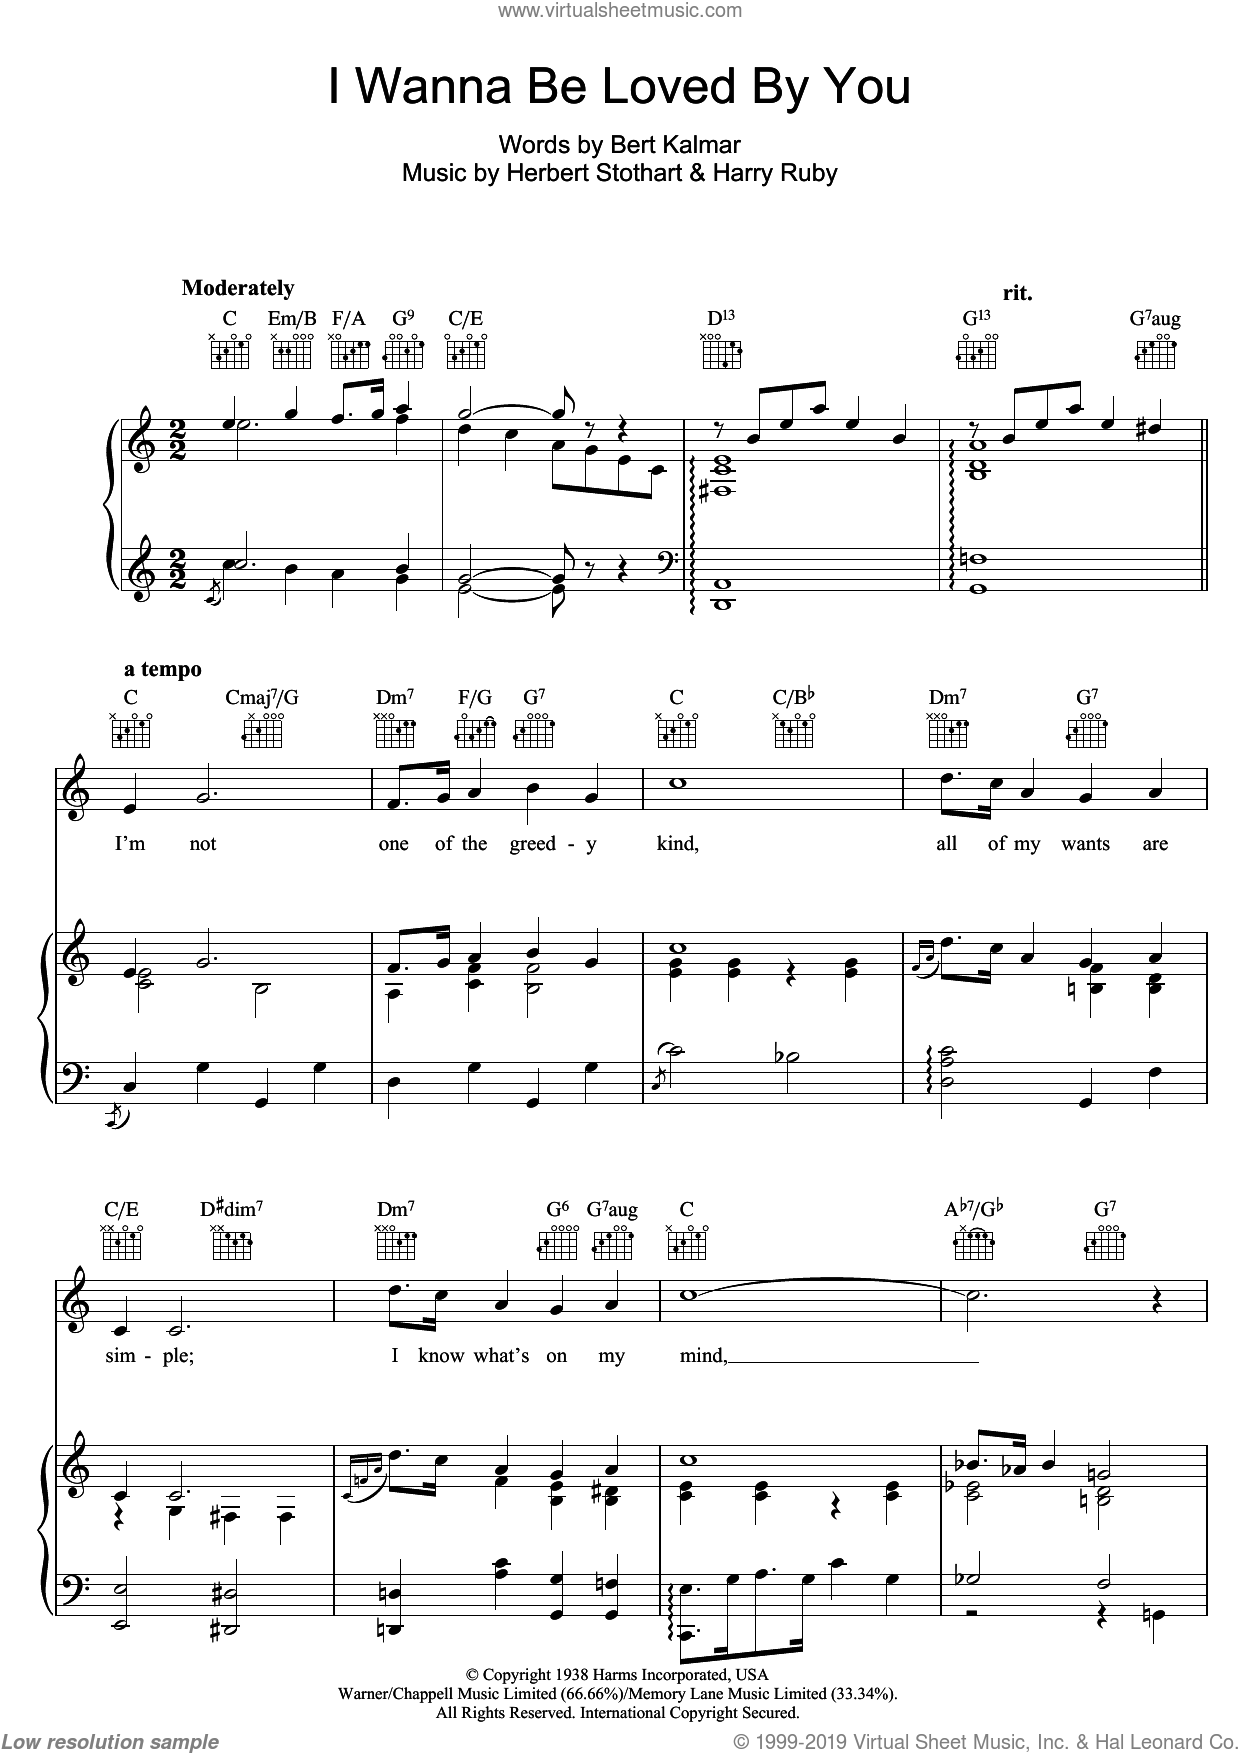 I Wanna Be Loved By You sheet music for voice, piano or guitar by Harry Ruby, Marilyn Monroe, Herbert Stothart and Bert Kalmar. Score Image Preview.